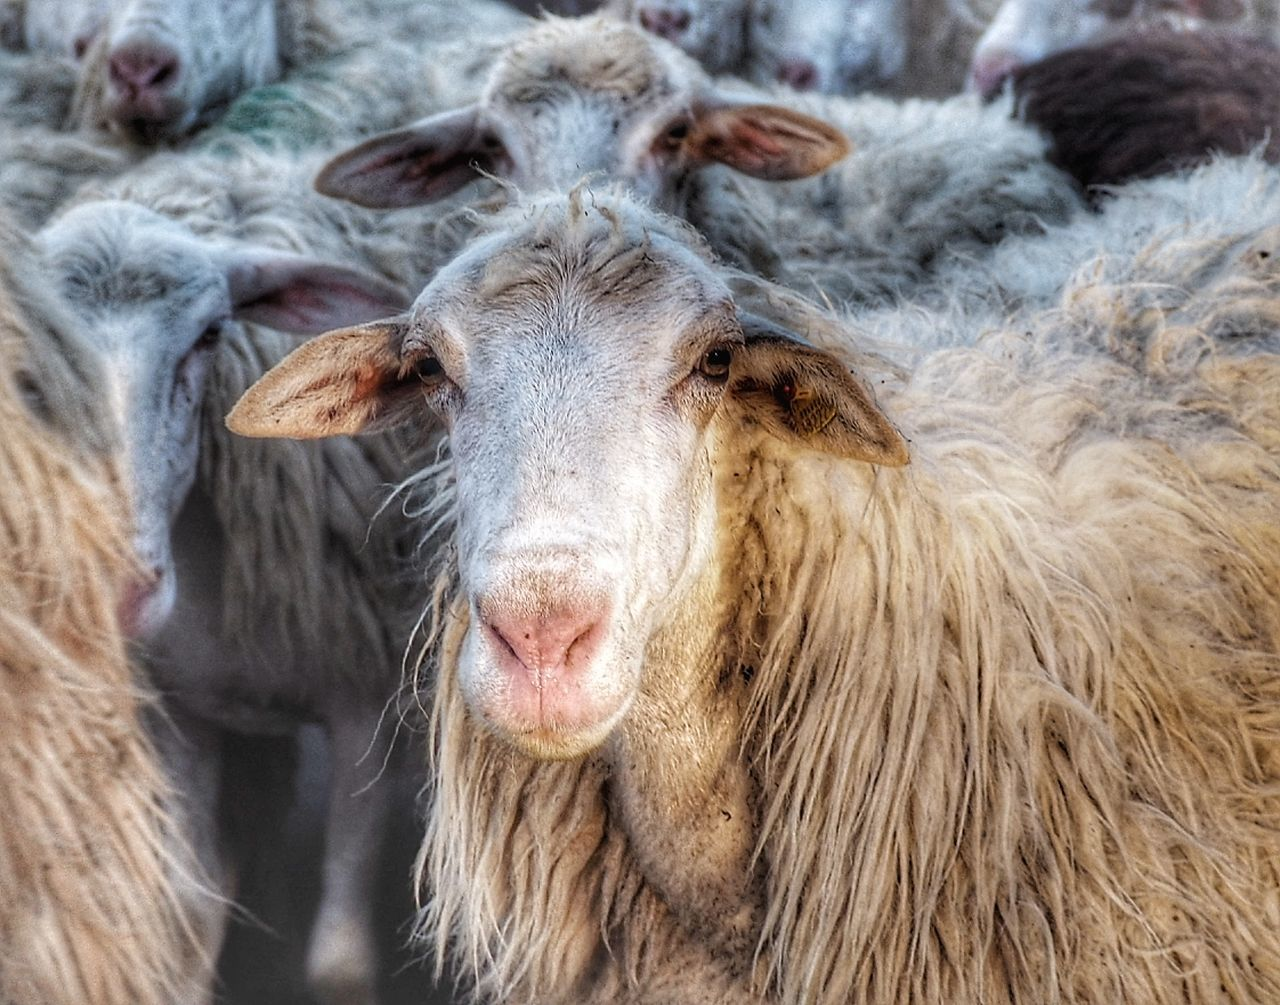 livestock, domestic animals, animal themes, mammal, no people, close-up, day, one animal, outdoors, portrait